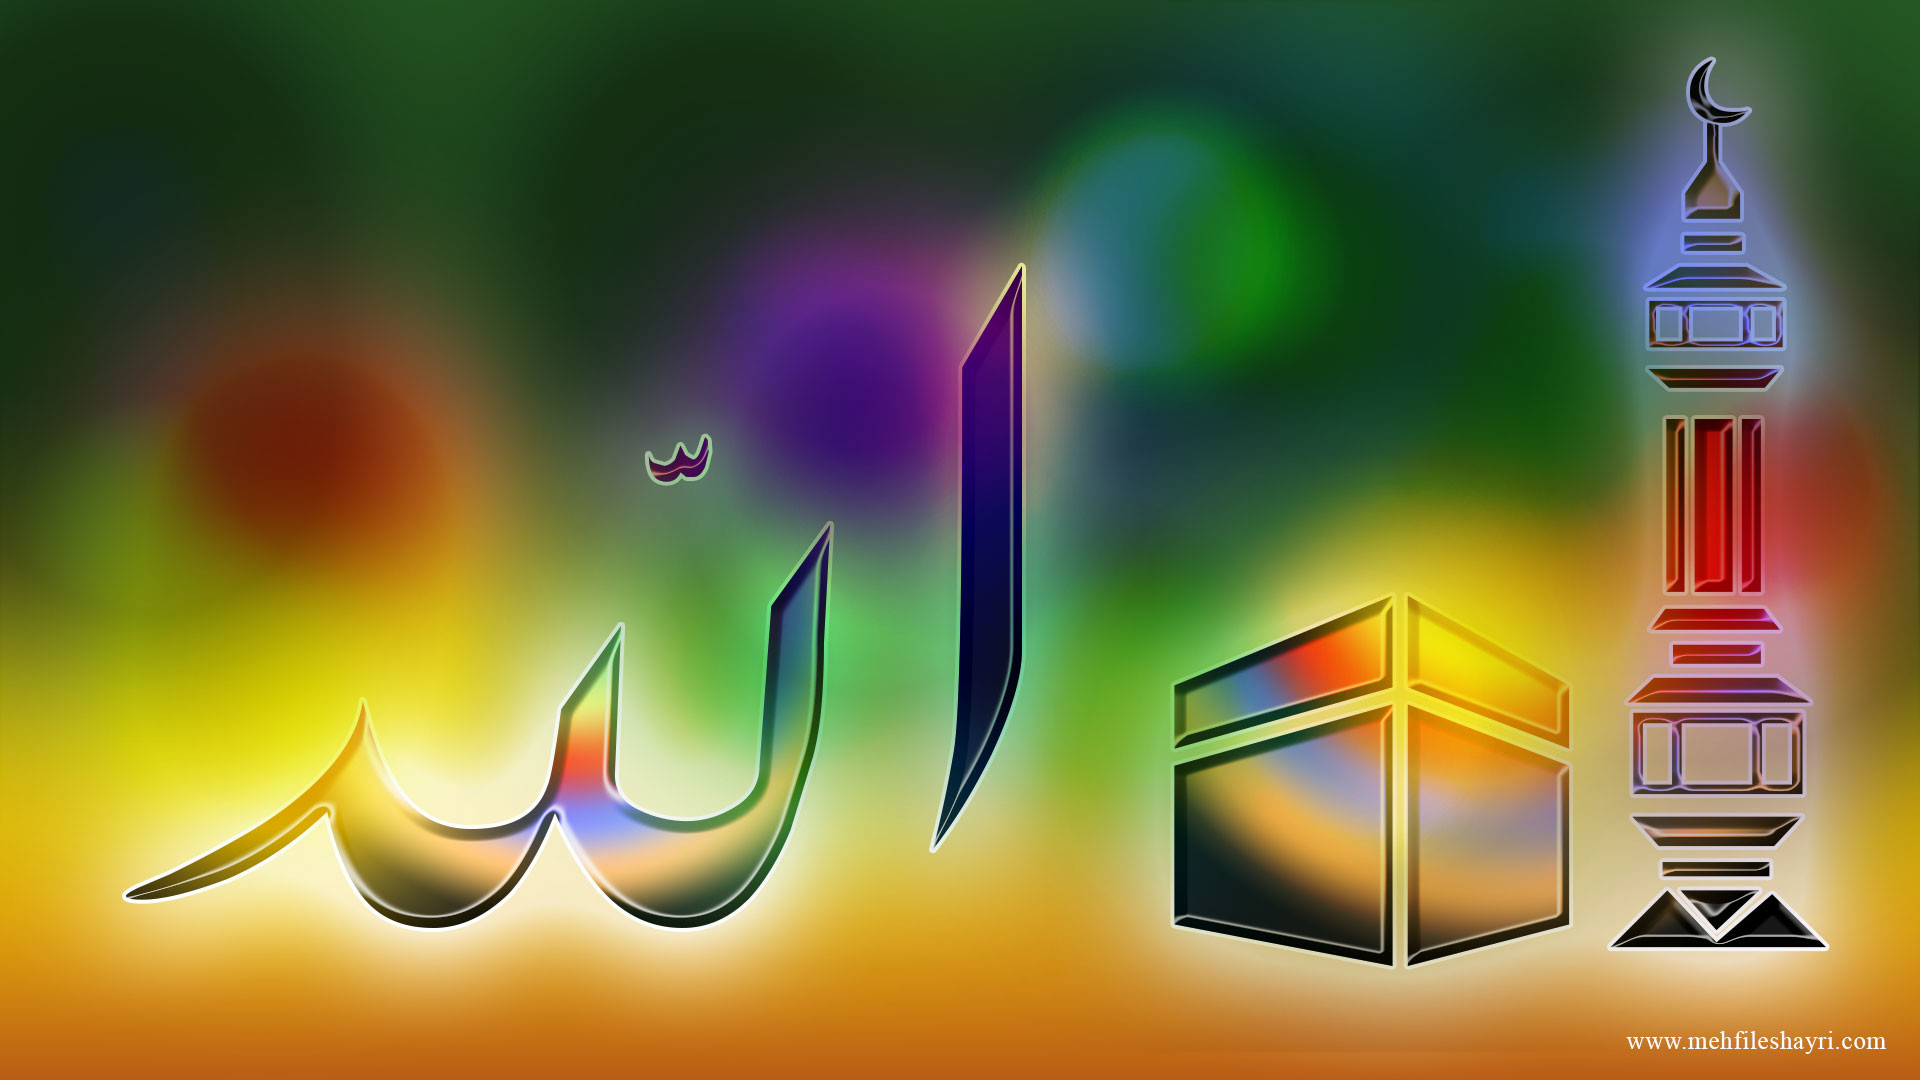 Full HD Islamic Wallpapers 1920x1080 (77+ Images